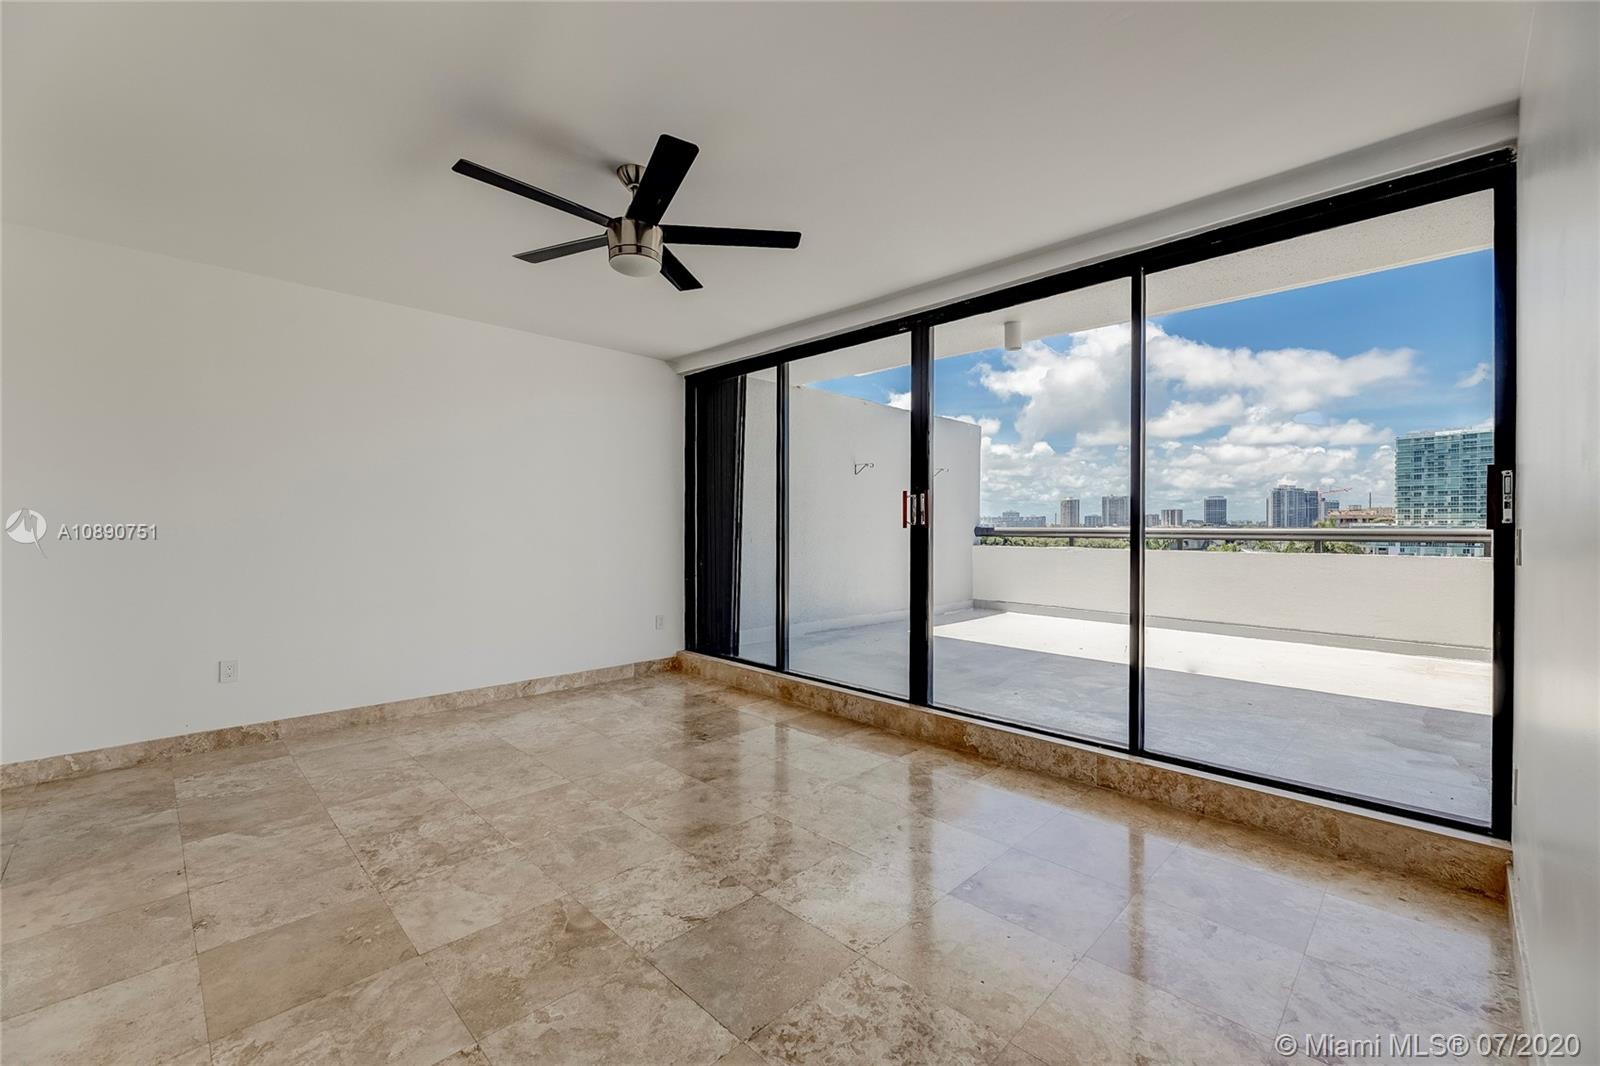 Photo of 425 Poinciana Island Drive #1444, Sunny Isles Beach, Florida, 33160 - Elevator entrance into the PH unit with security video intercom and secondary exit via stairway